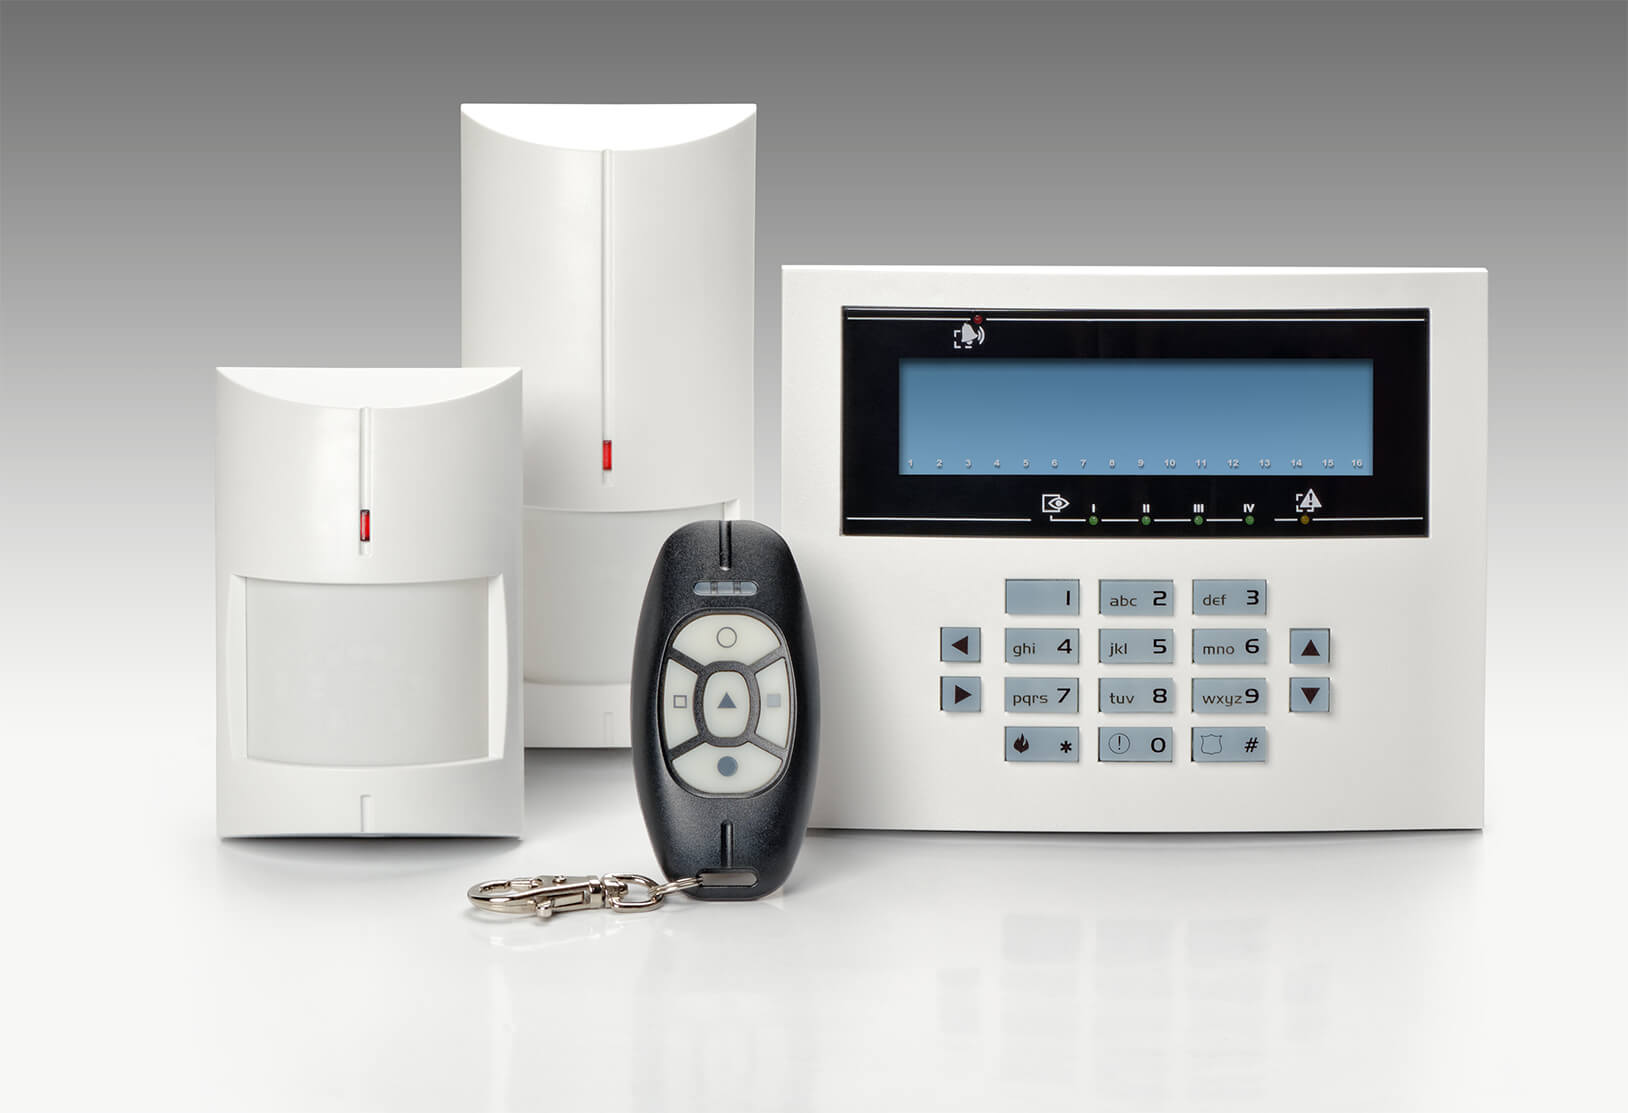 Business & Residential NSI / NACOSS Approved Burglar Alarms In St. John's Wood NW8 - Local St. John's Wood NW8 security company.Call 02078872244 - Dedicated to Safety & Security. Companies, shops and homes ..